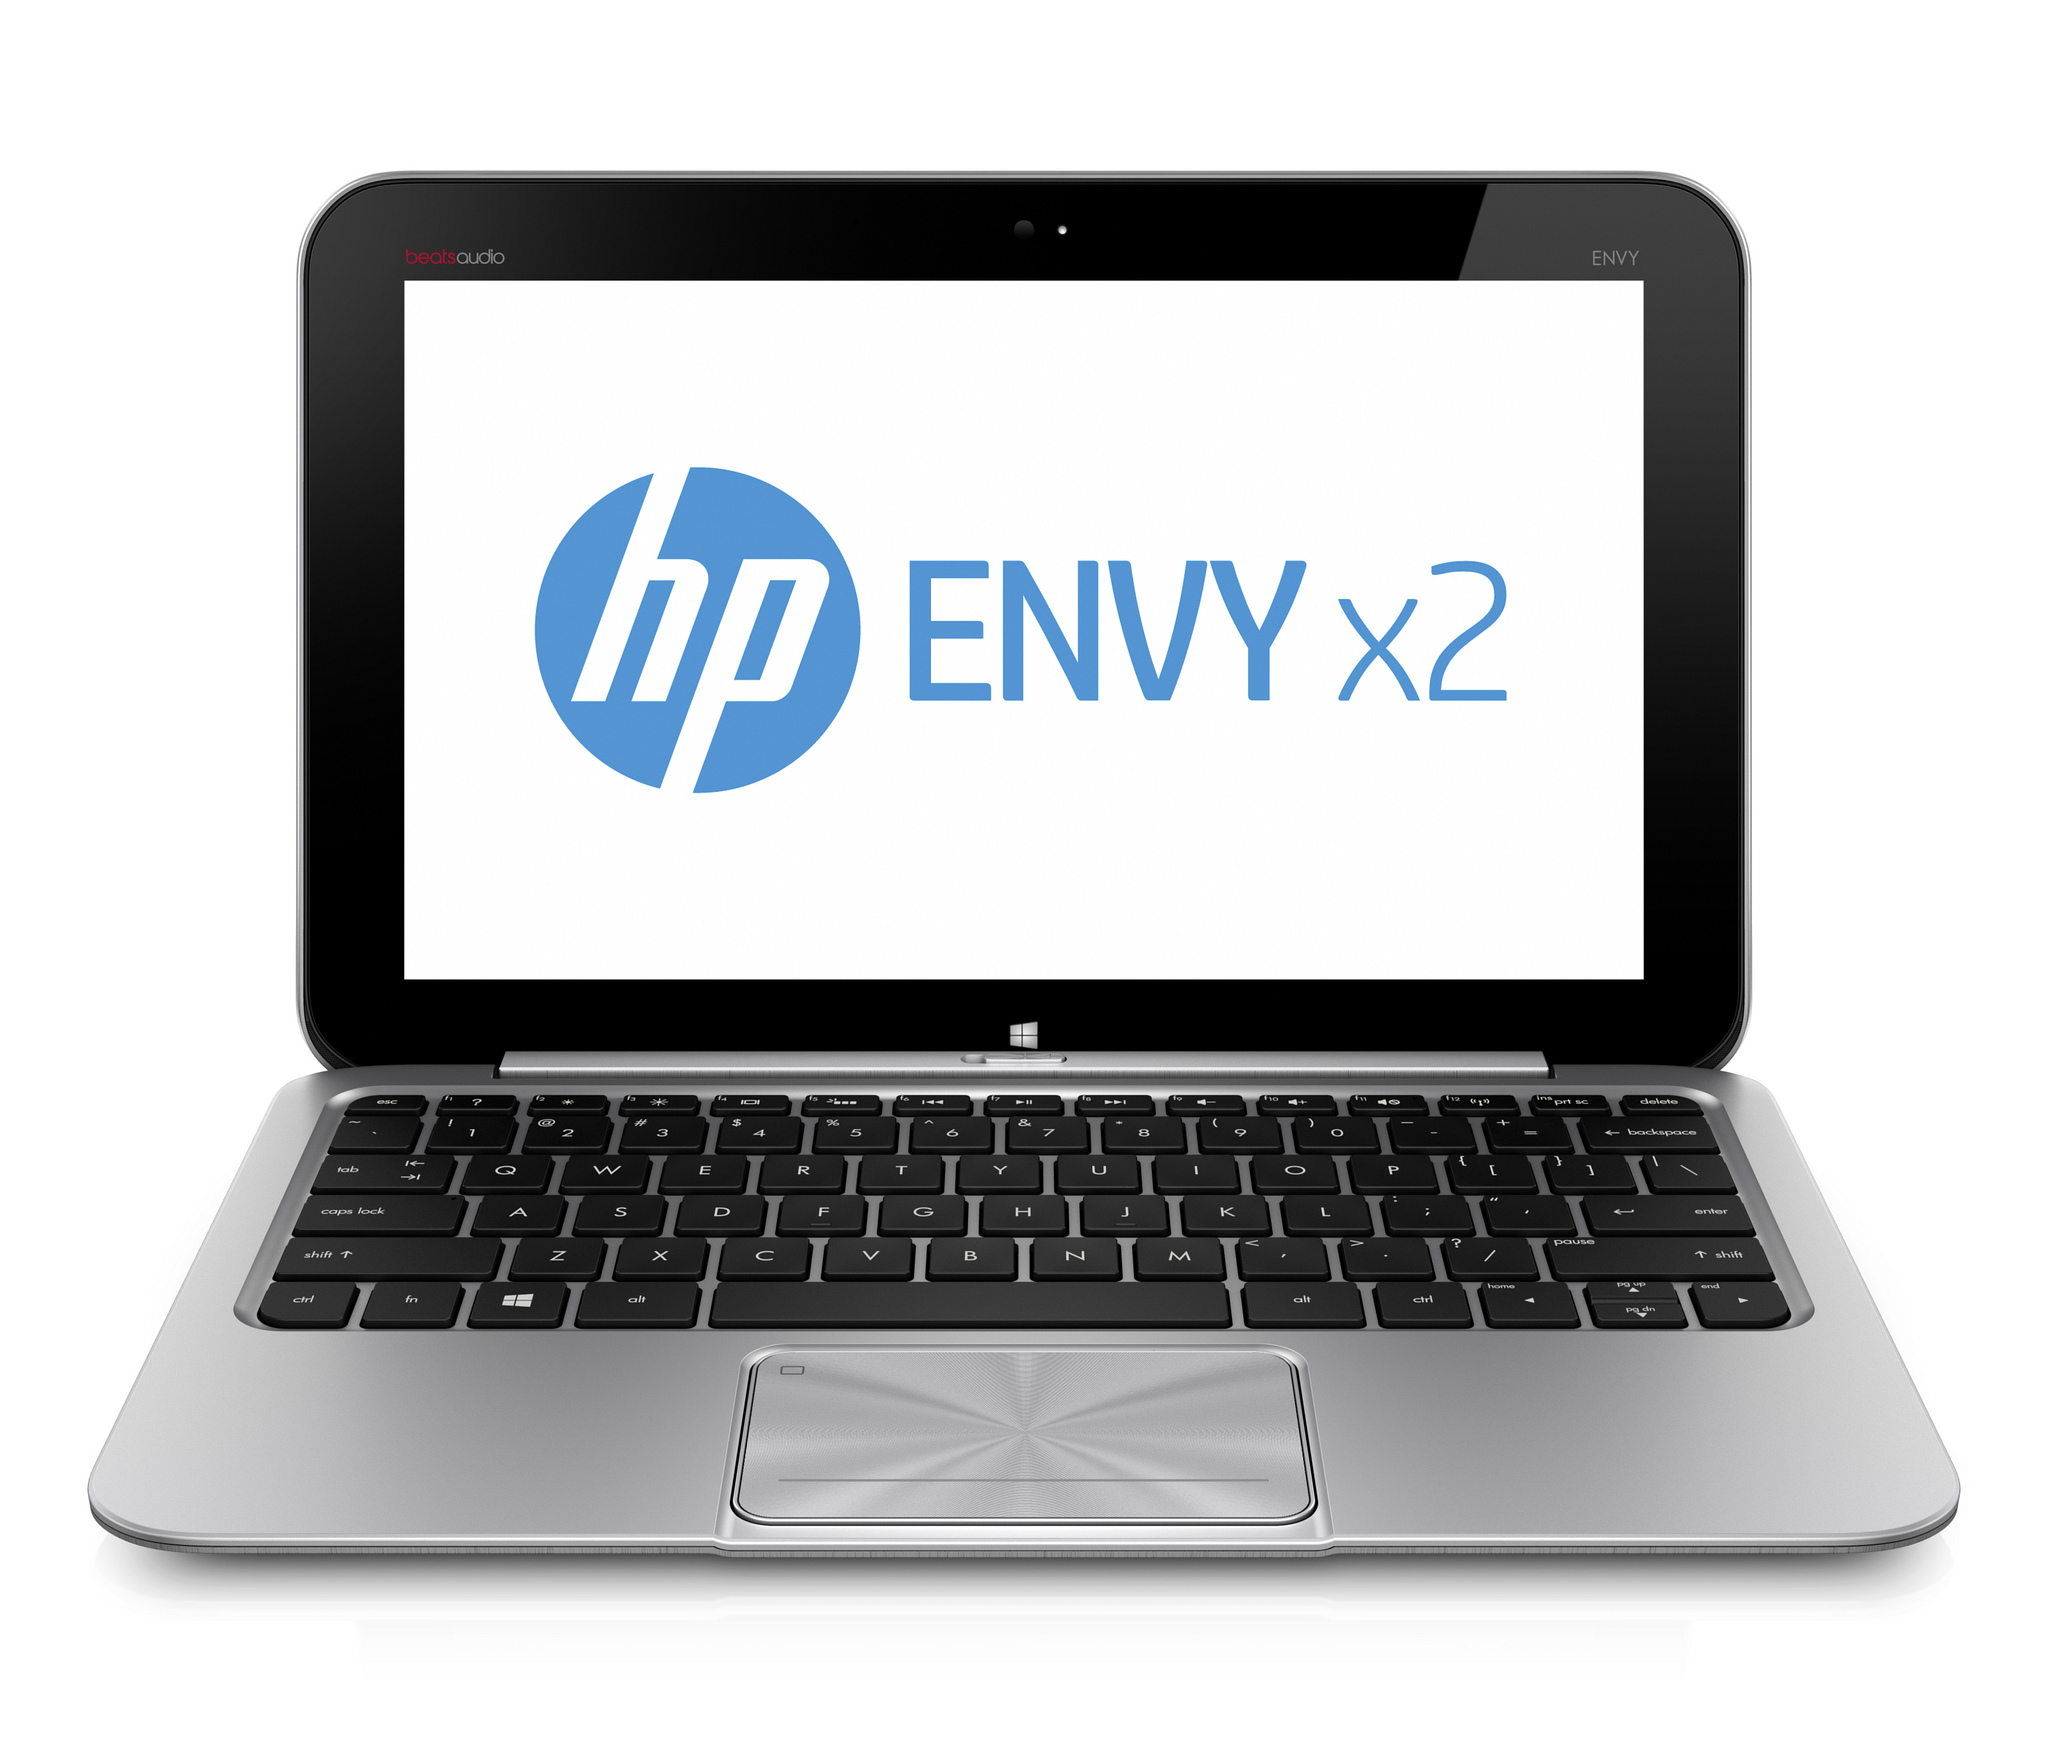 HP Envy x2: Dünner Hybrid-PC für Windows 8 - HP Envy x2 mit Windows 8